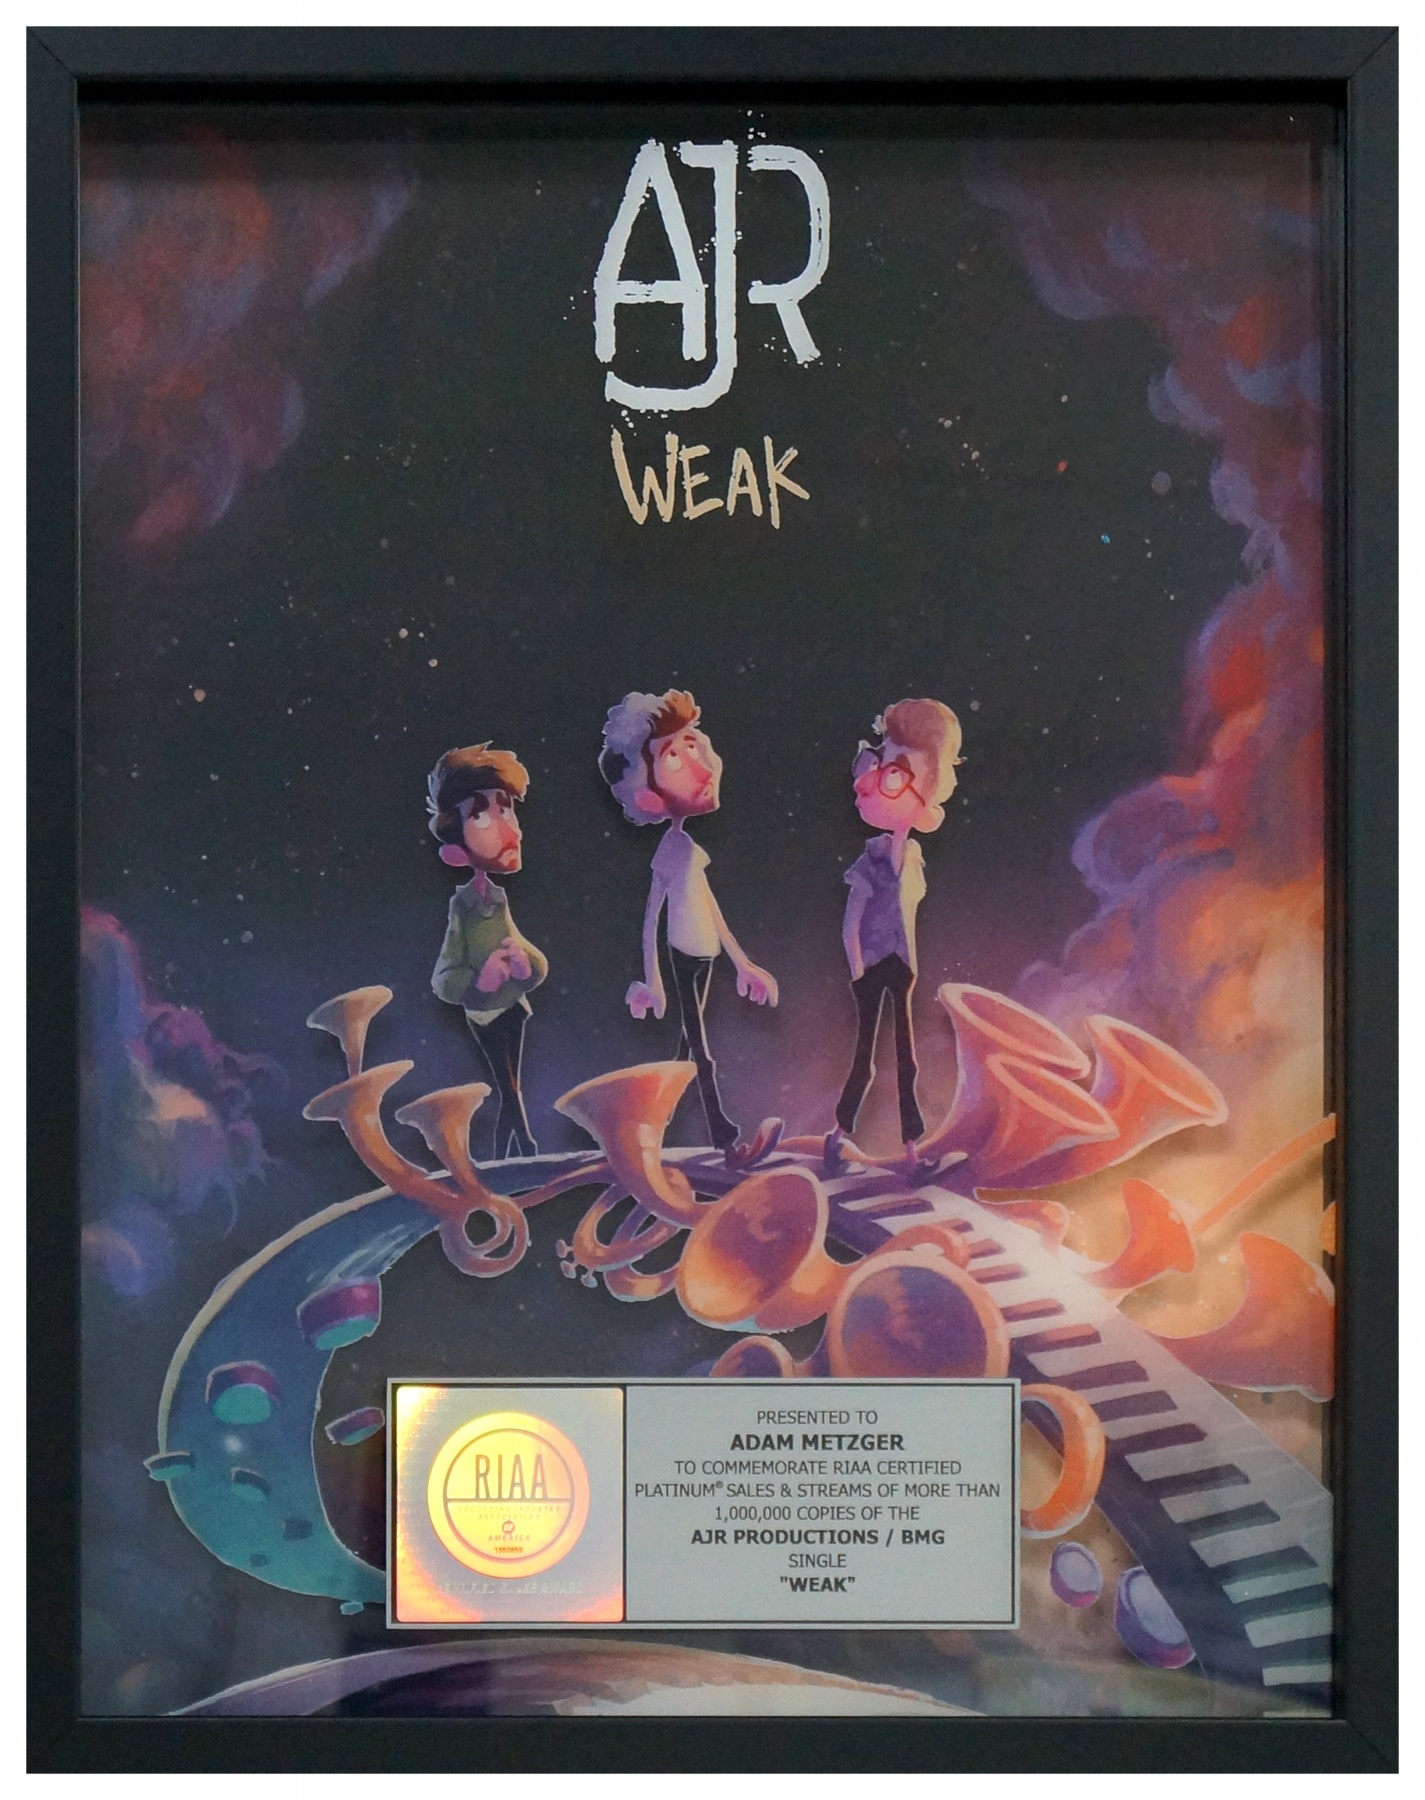 AJR Weak plaque.jpg